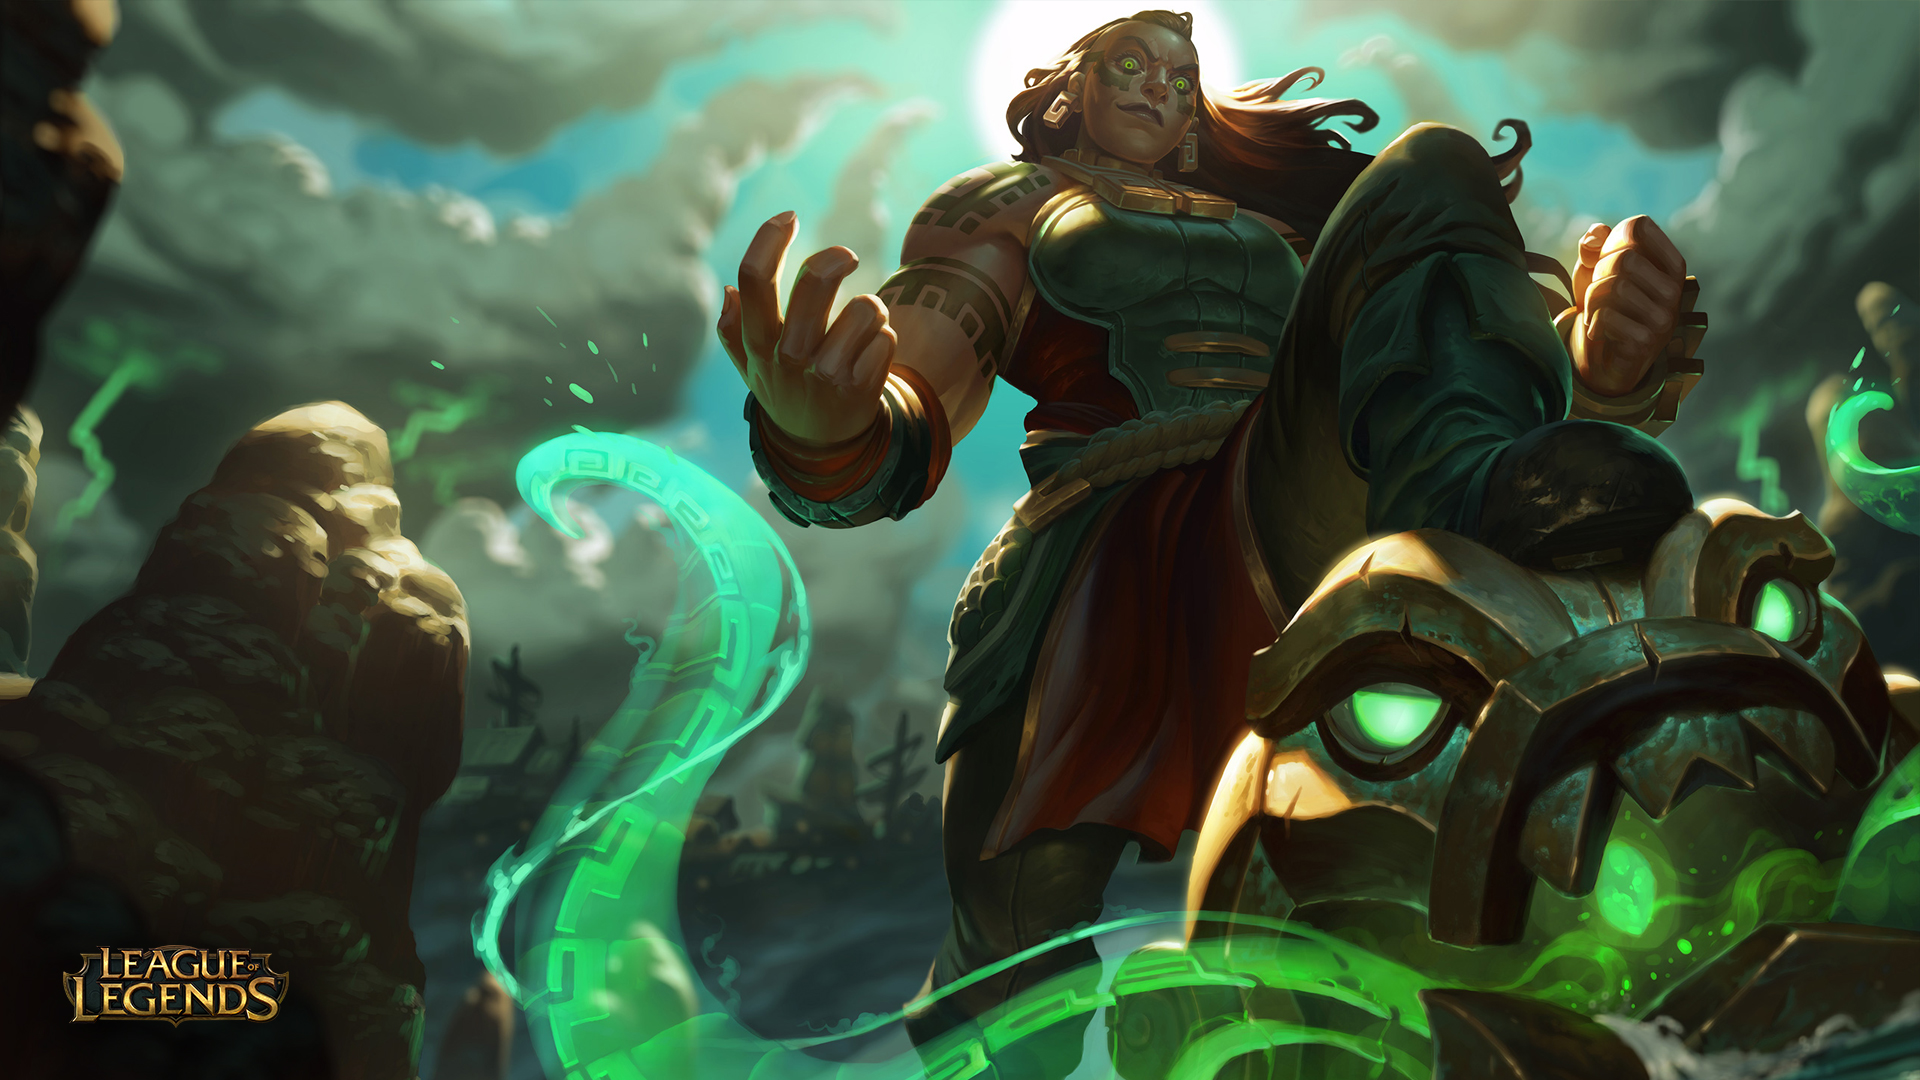 League Of Legends Adds Illaoi, The Kraken Priestess To Its Roster